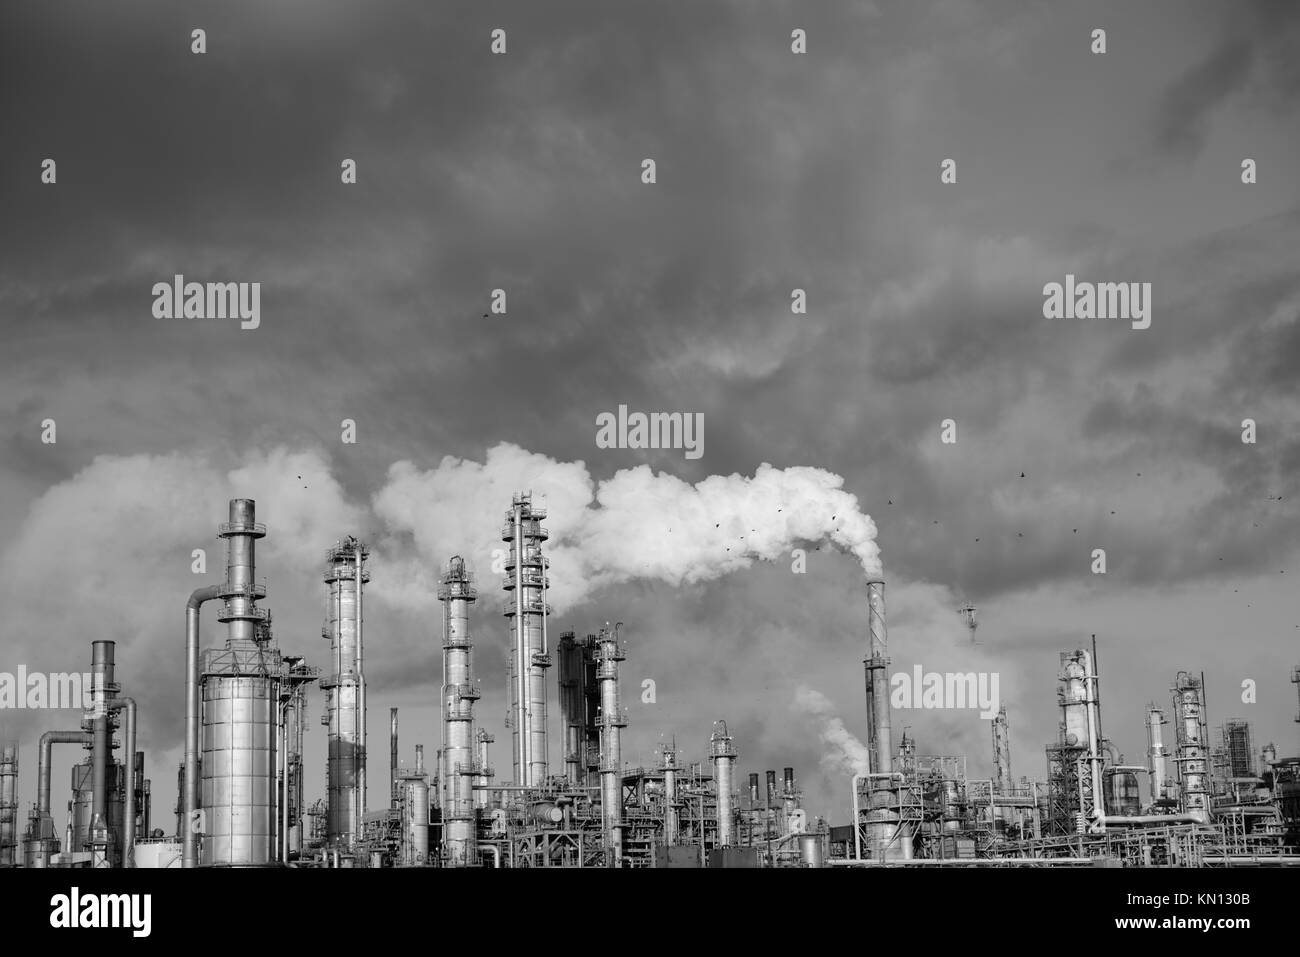 Plume of smoke rising from the smoke stack tower of an industrial oil and gas refinery in Corpus Christi, Texas - Stock Image